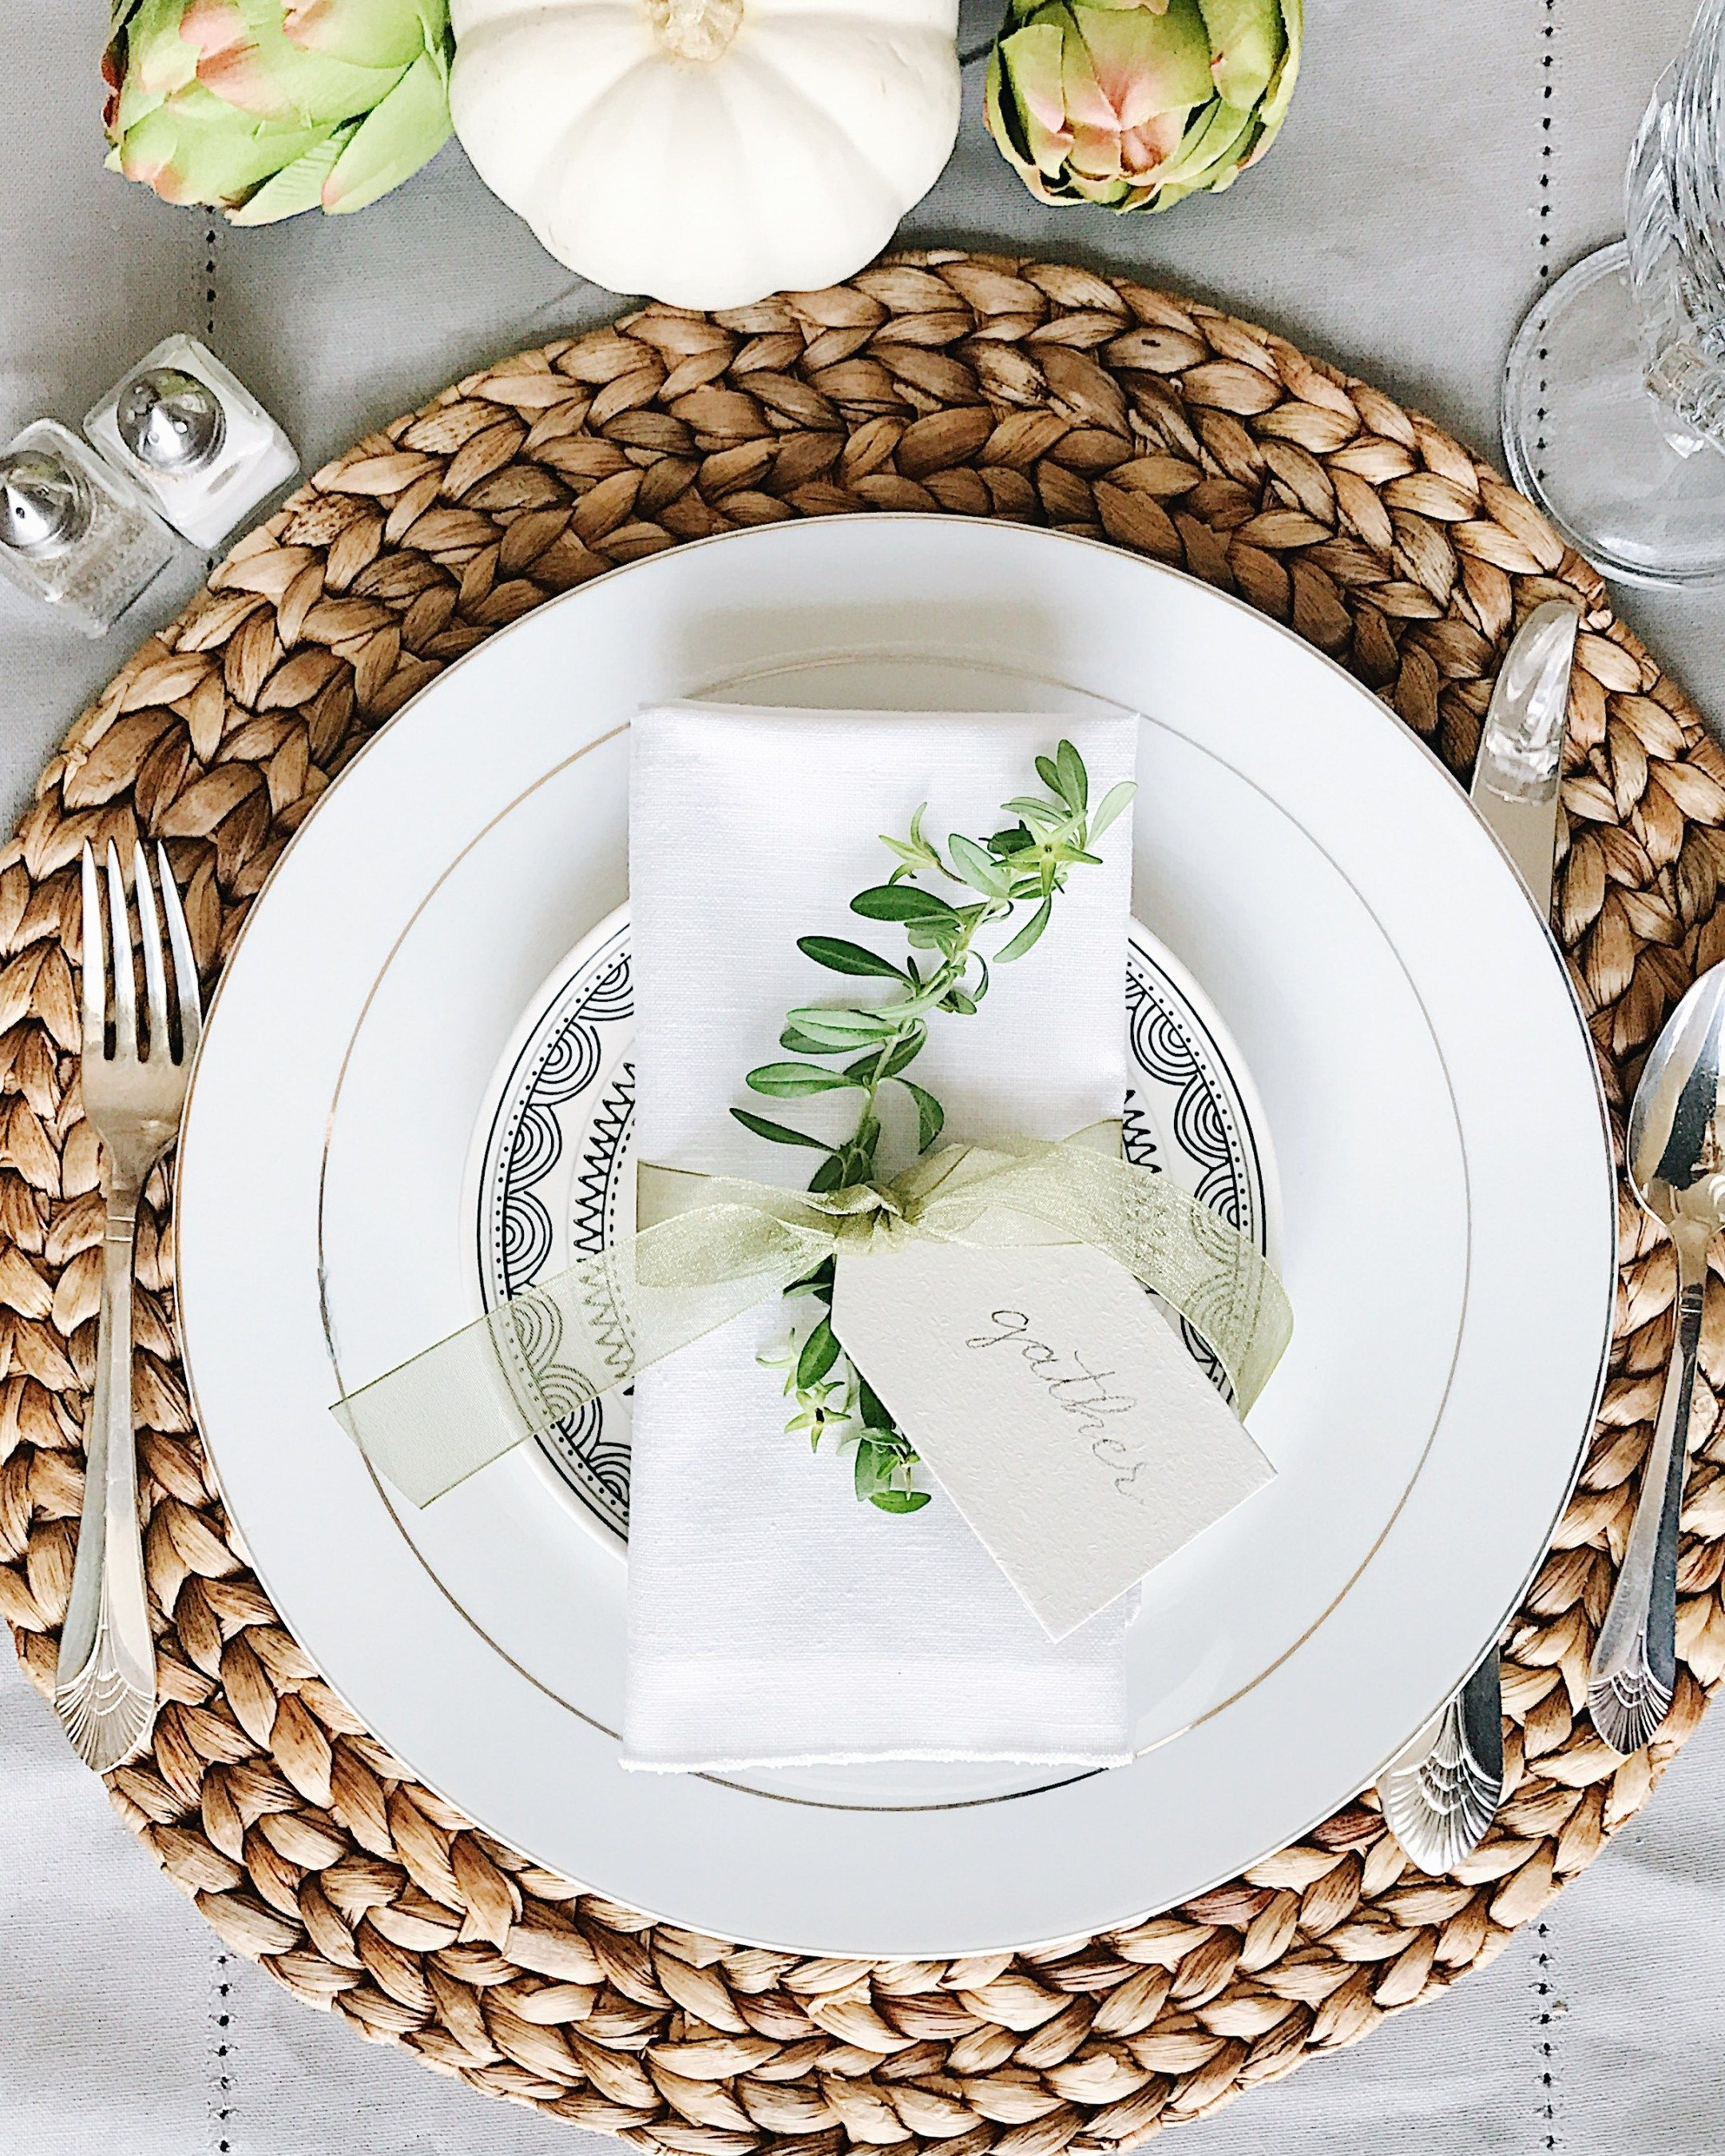 Beautifully Simple Thanksgiving Table Decor and Table Setting Ideas #thanksgivingtablesettings